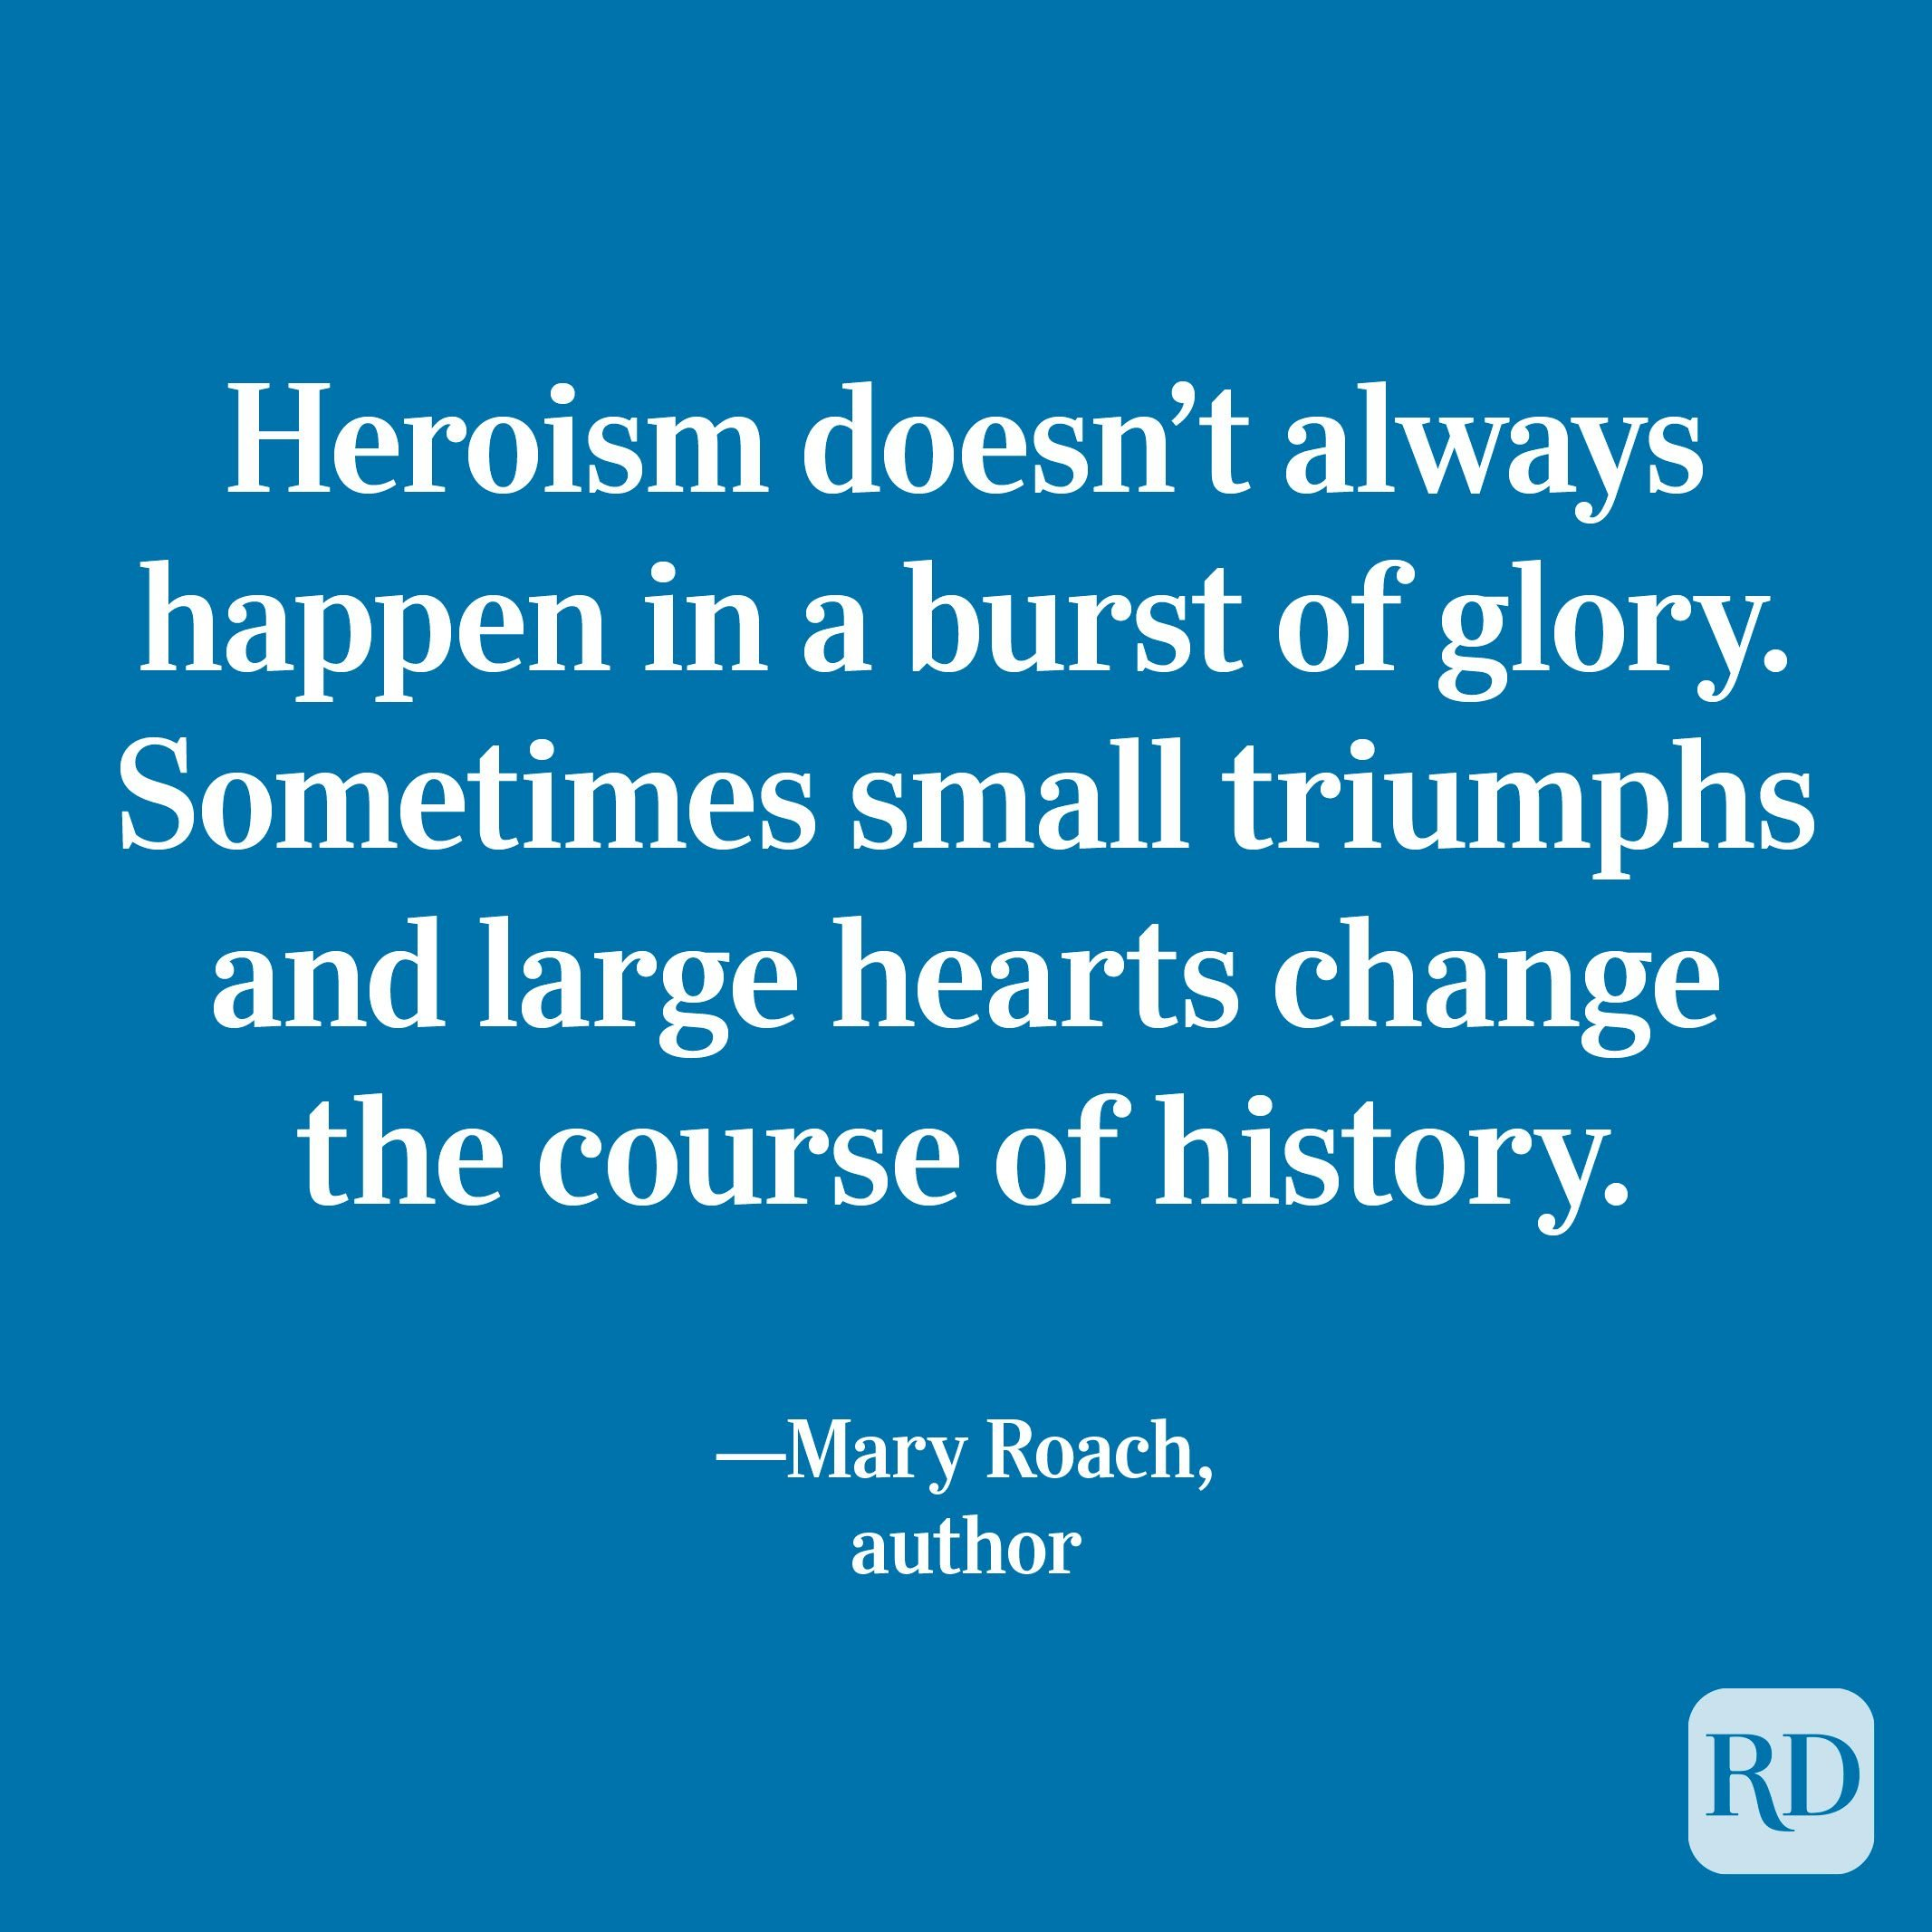 """""""Heroism doesn't always happen in a burst of glory. Sometimes small triumphs and large hearts change the course of history."""" —Mary Roach, author"""